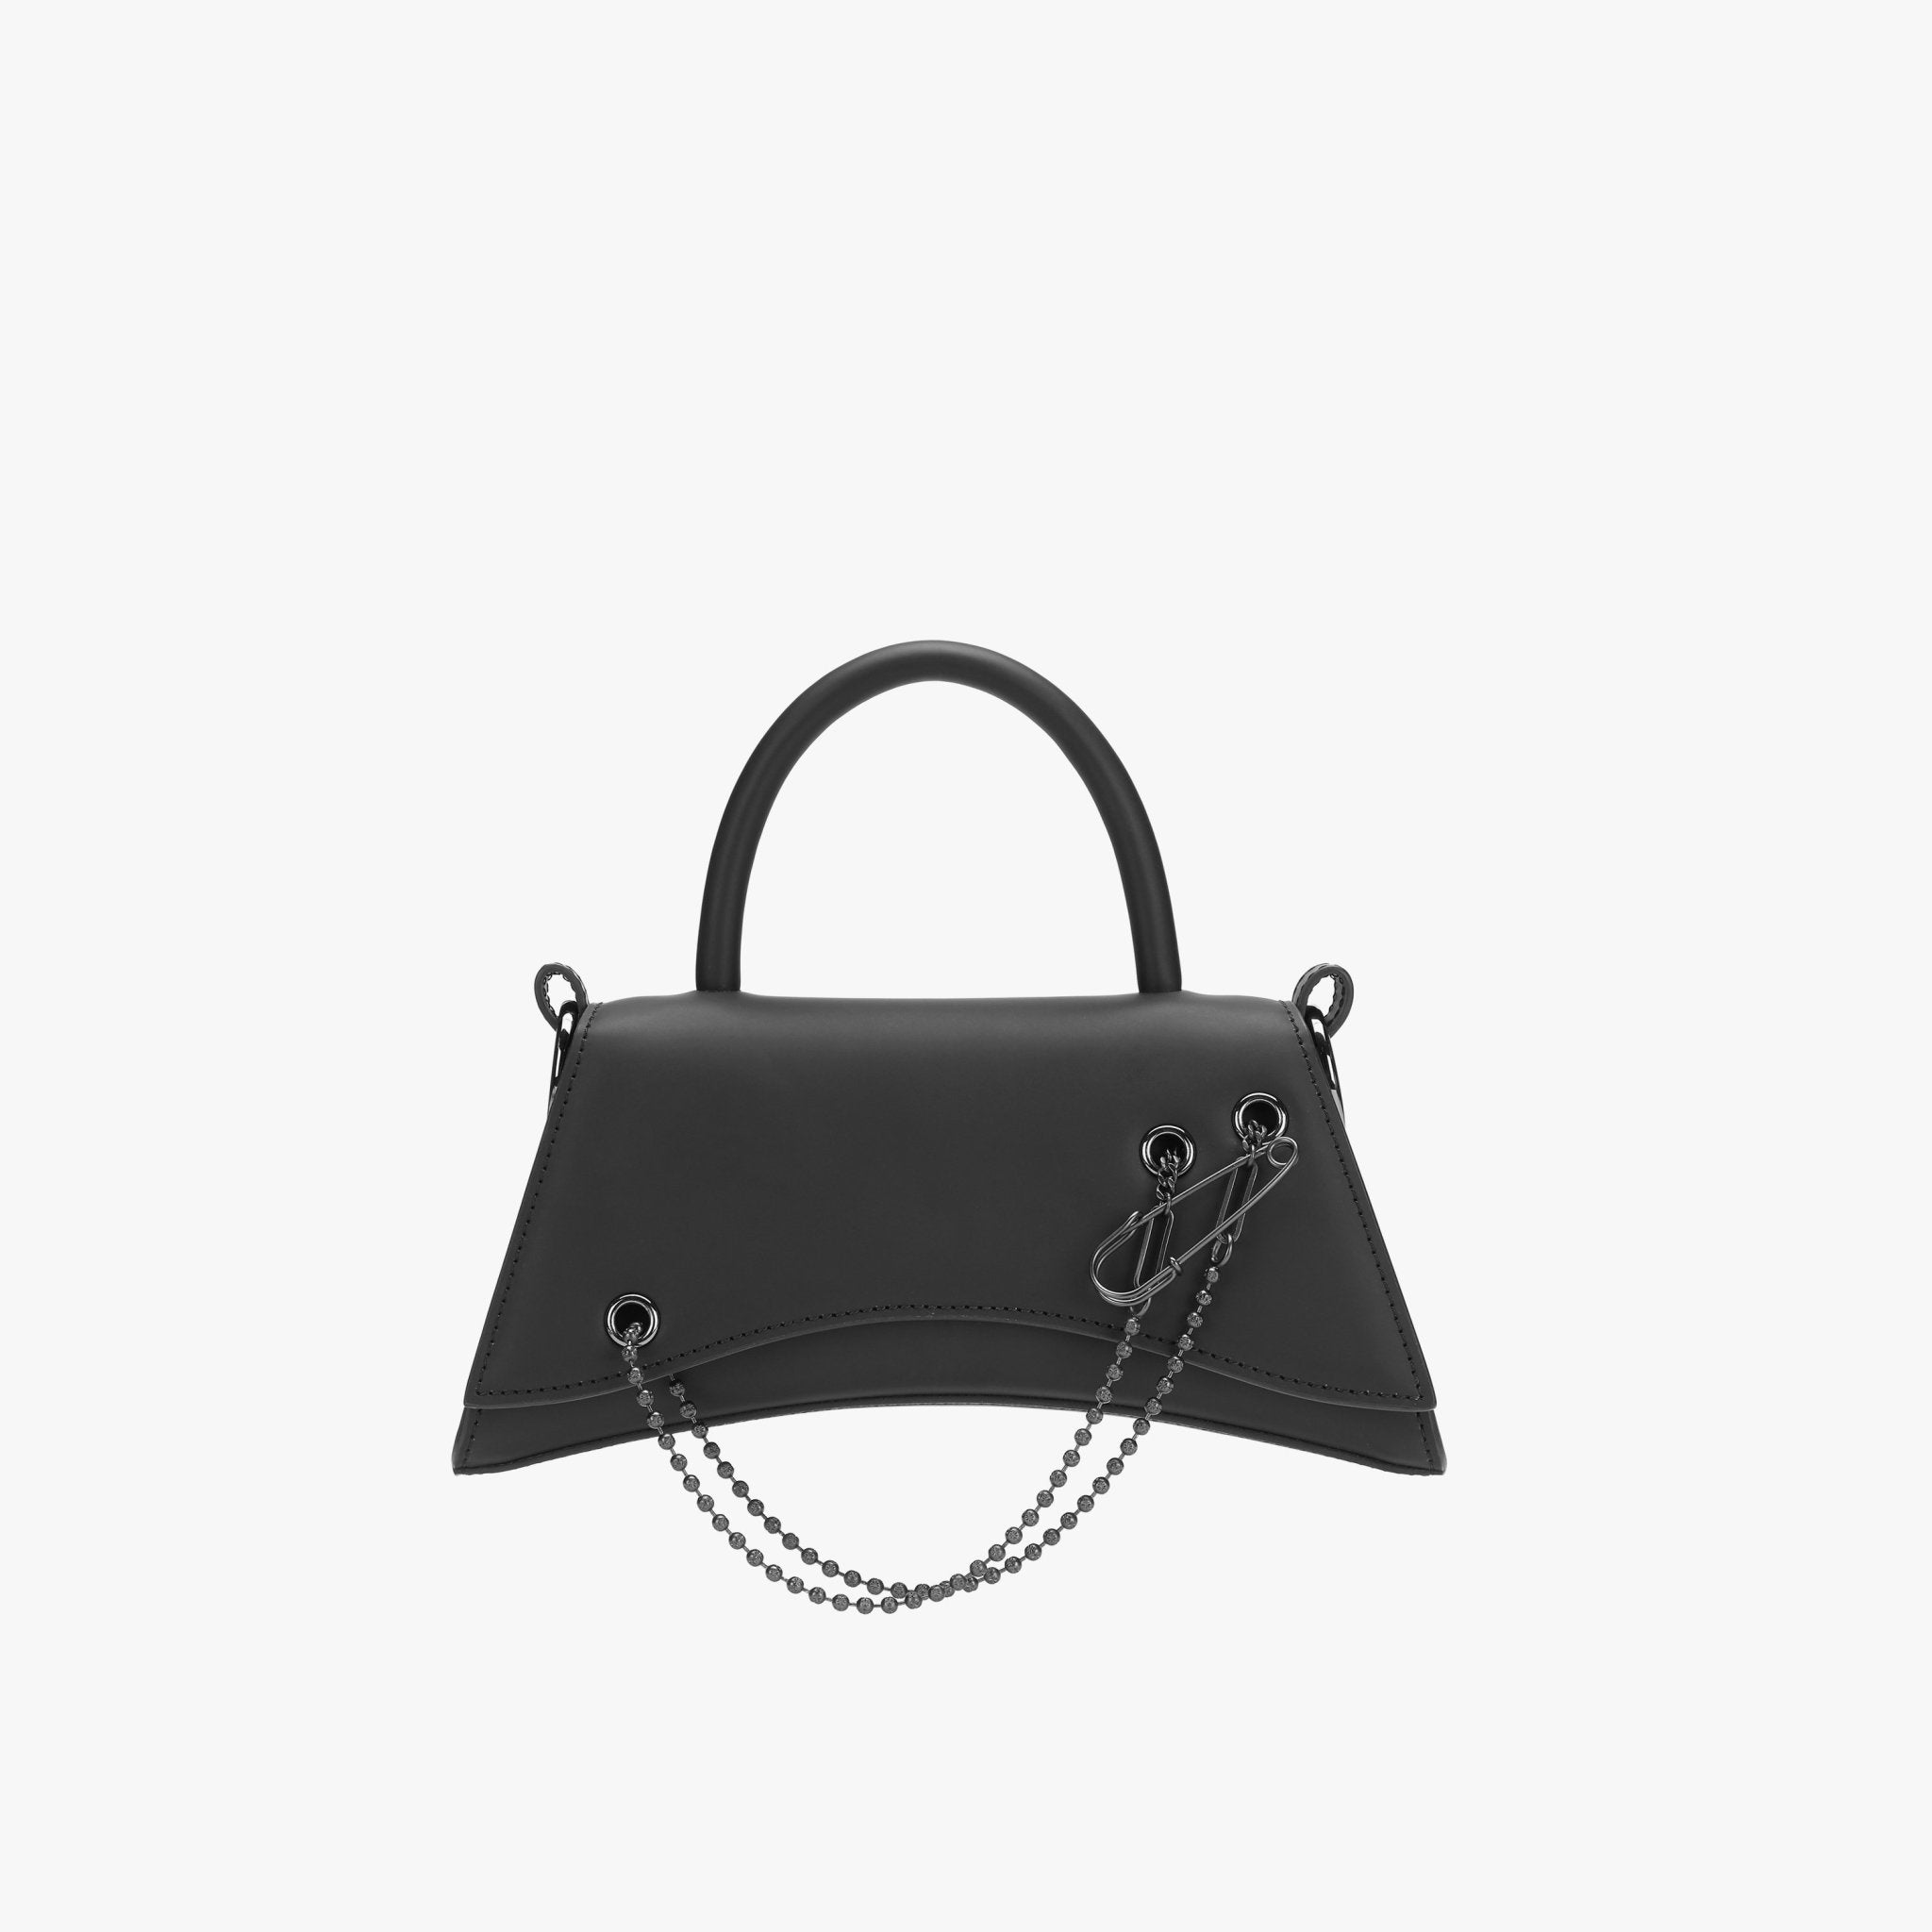 LOST IN ECHO Black Barrett Metal Chain Bag Small | MADA IN CHINA